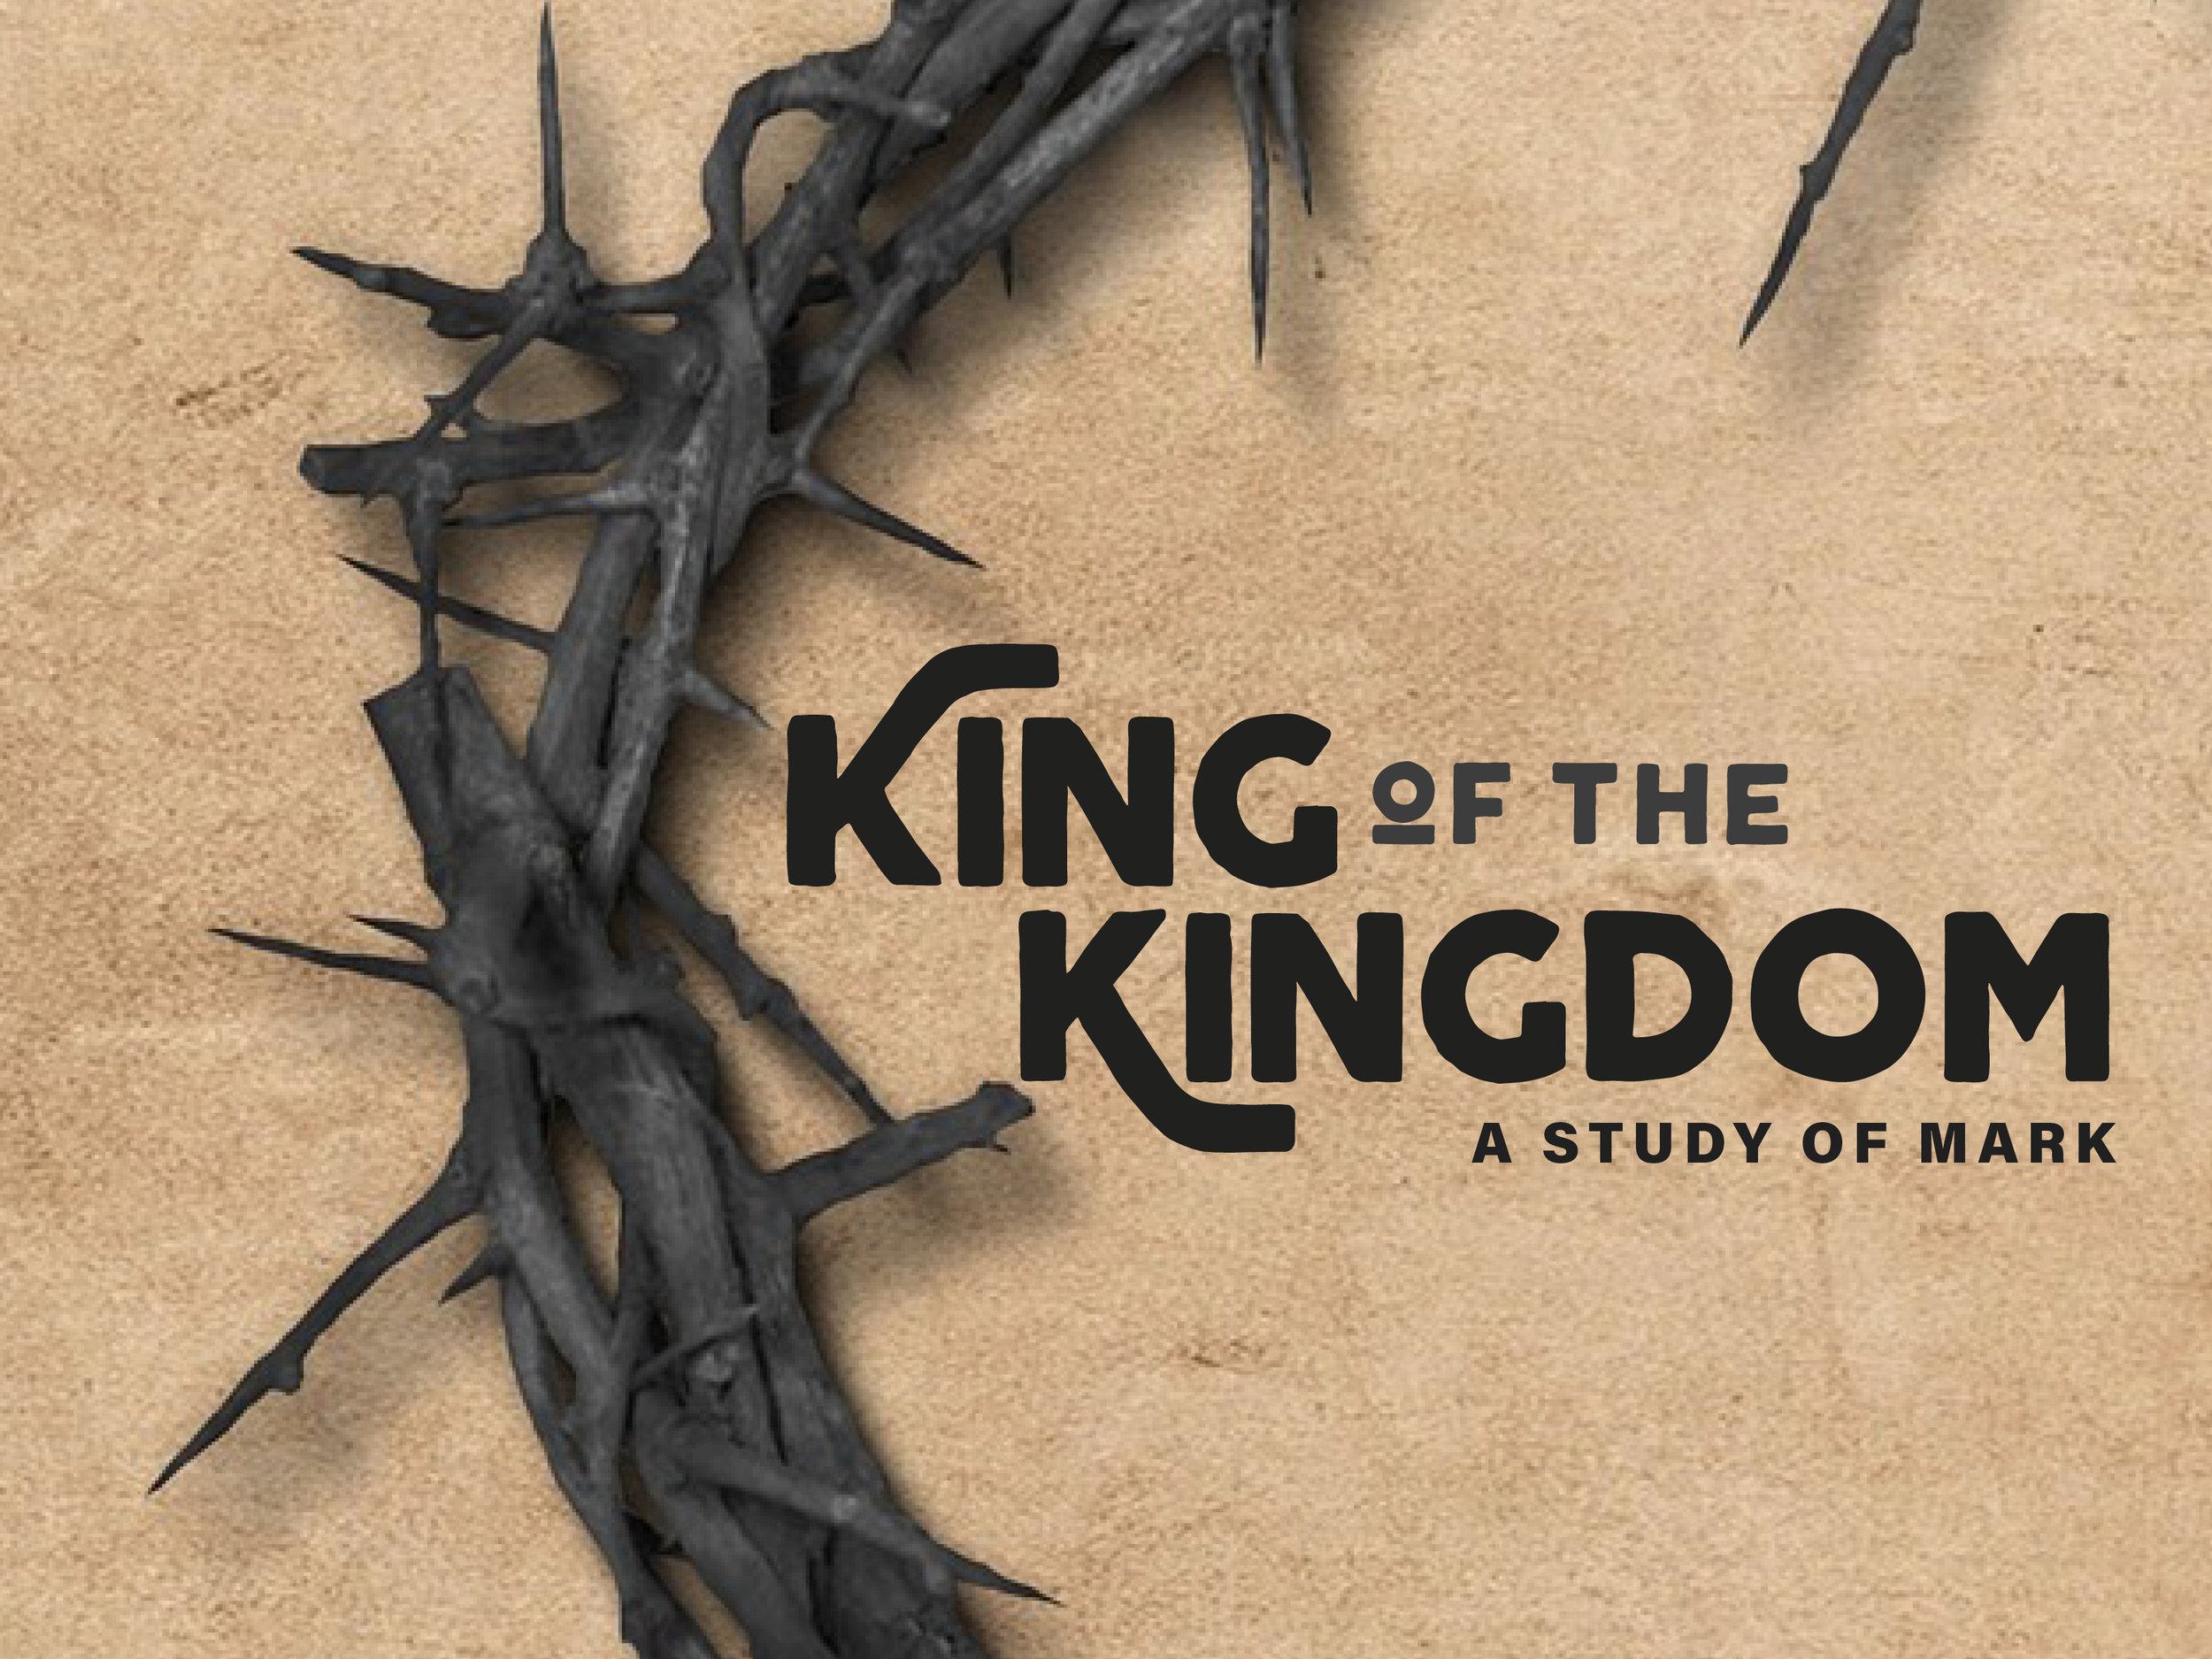 King of the Kingdom:  A Study of Mark